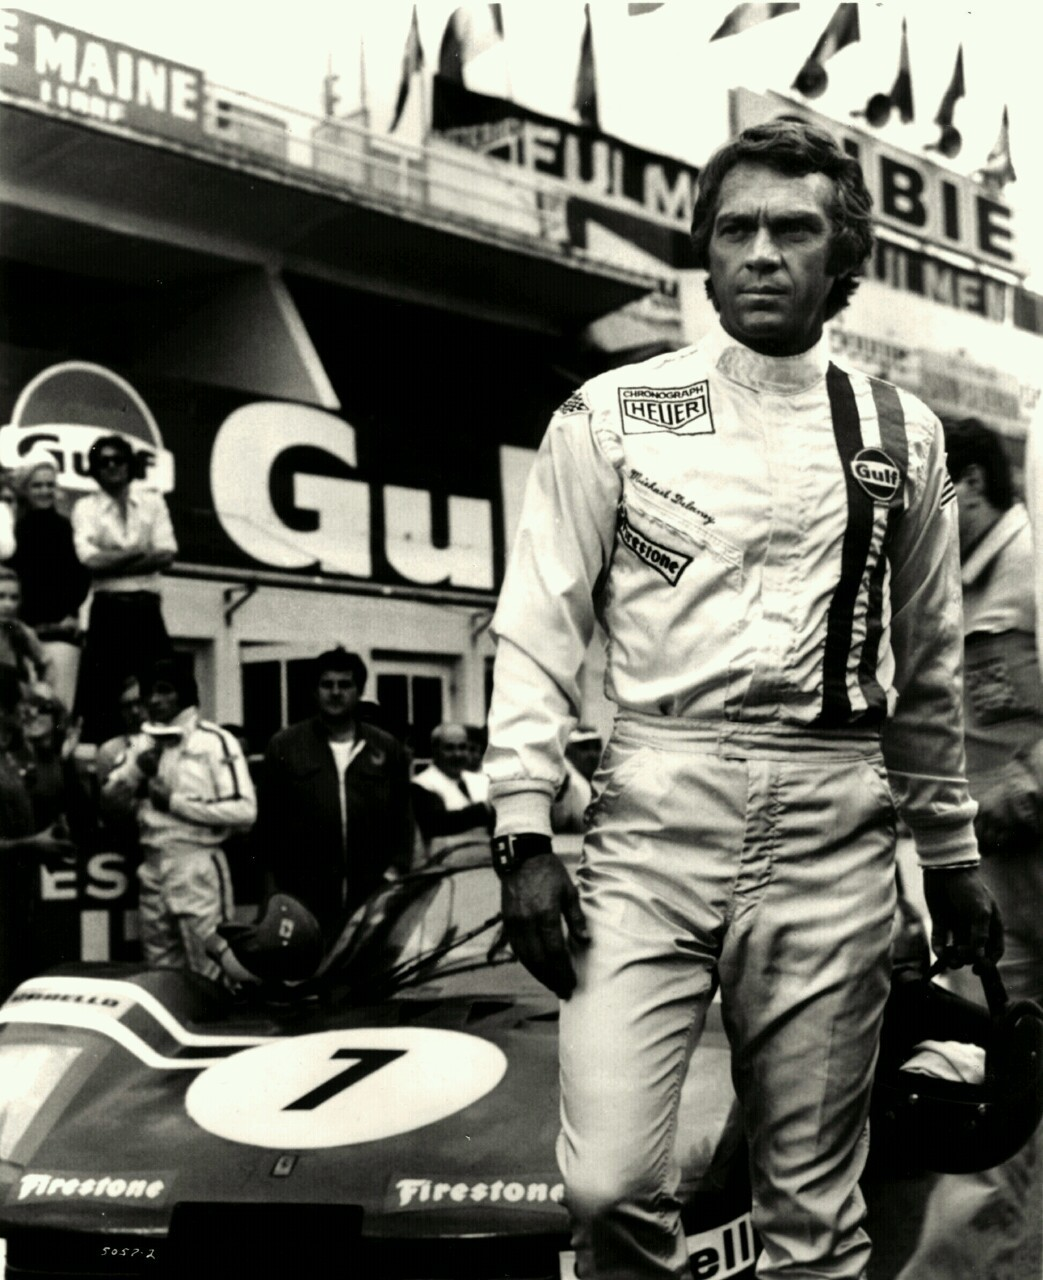 answertonobody:  Steve McQueen.